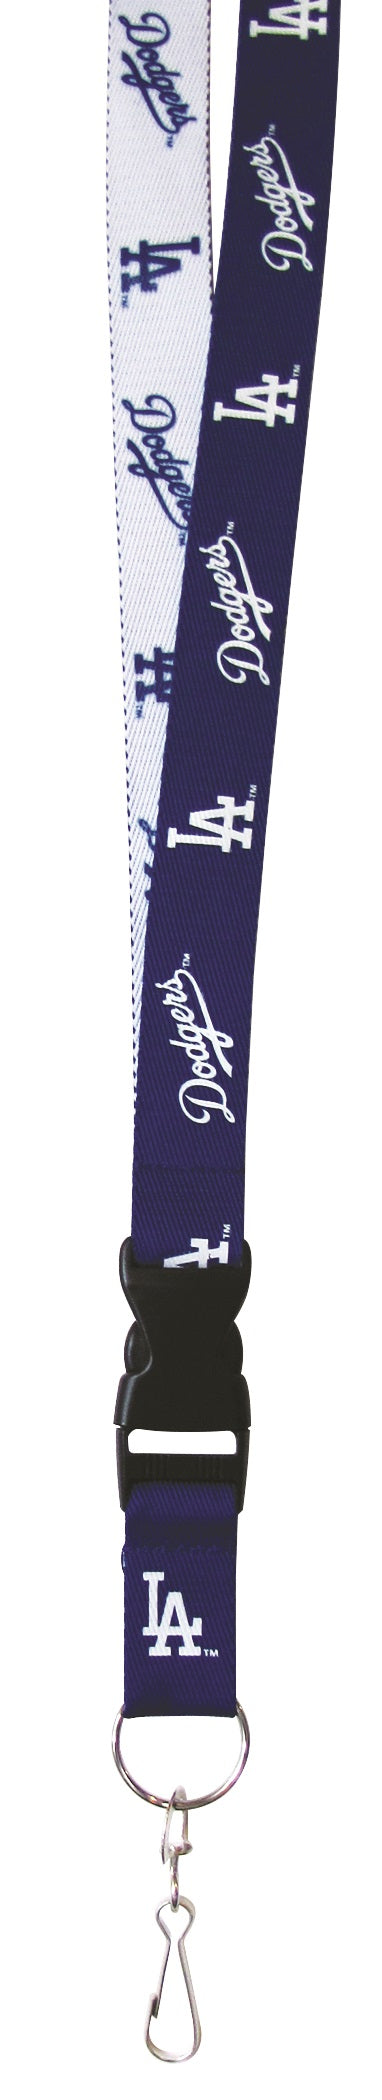 Los Angeles Dodgers Lanyard - Two-Tone - Special Order